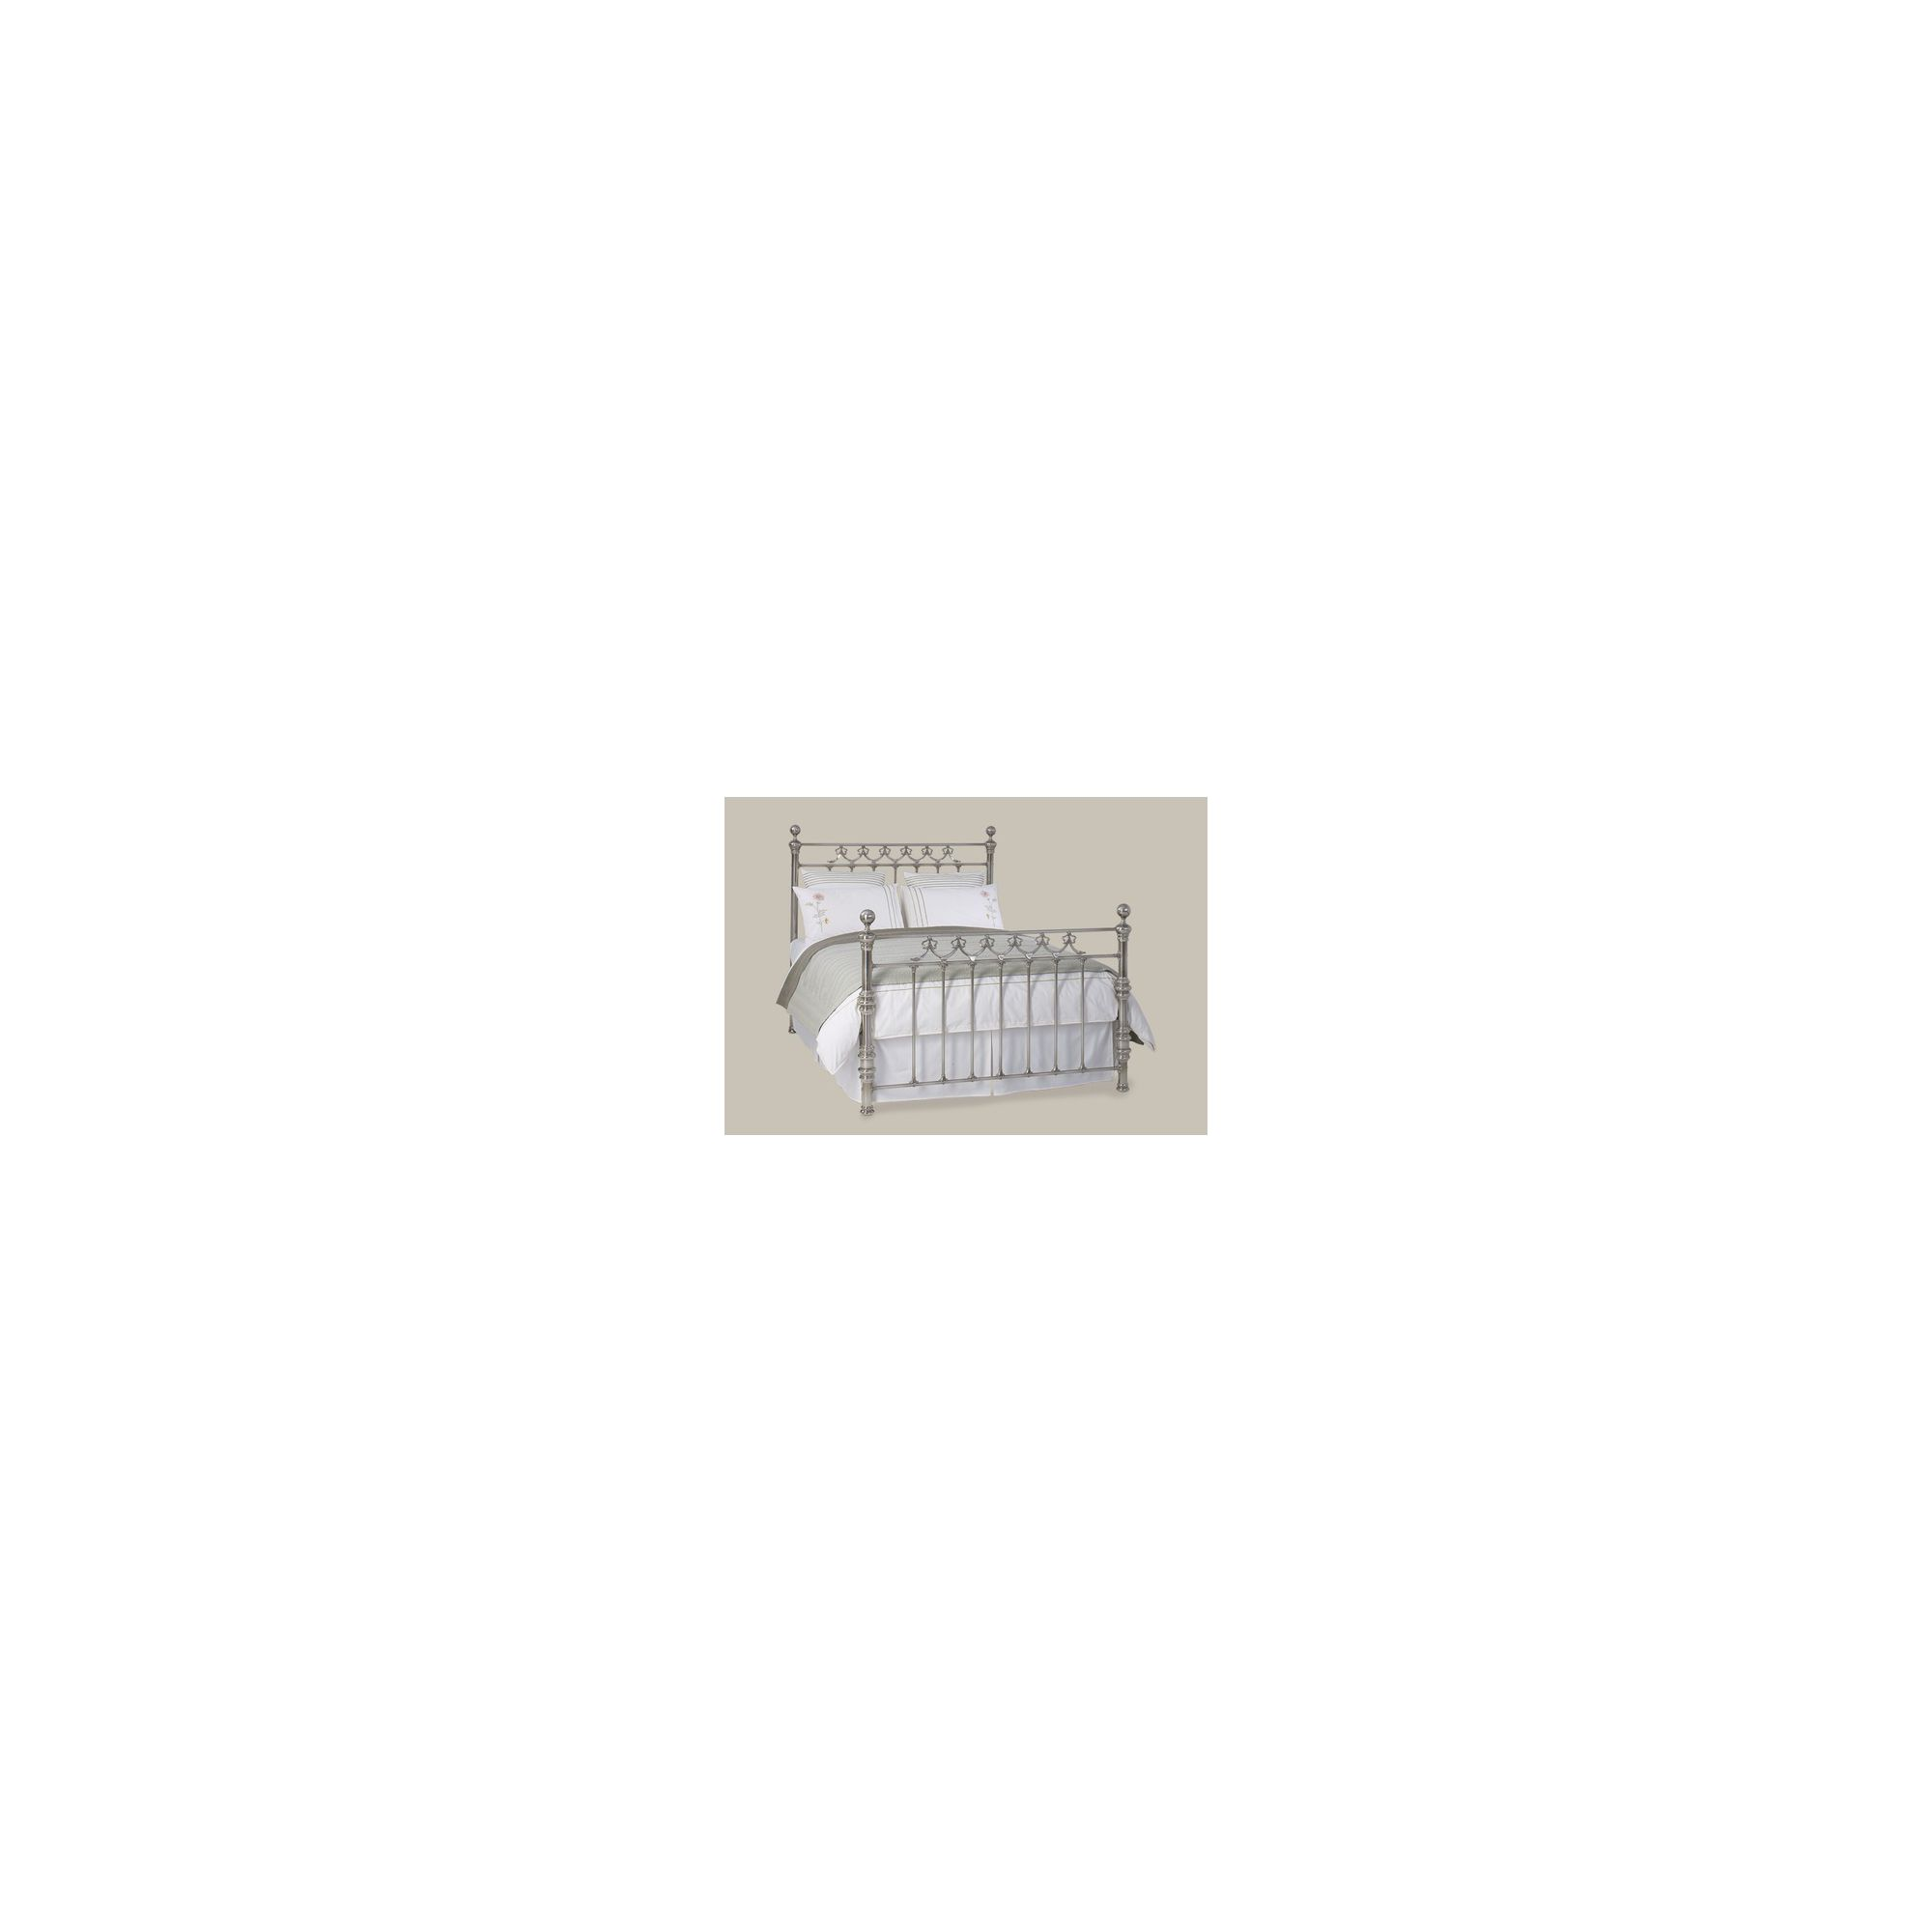 OBC Newton Bed Frame - Double at Tesco Direct